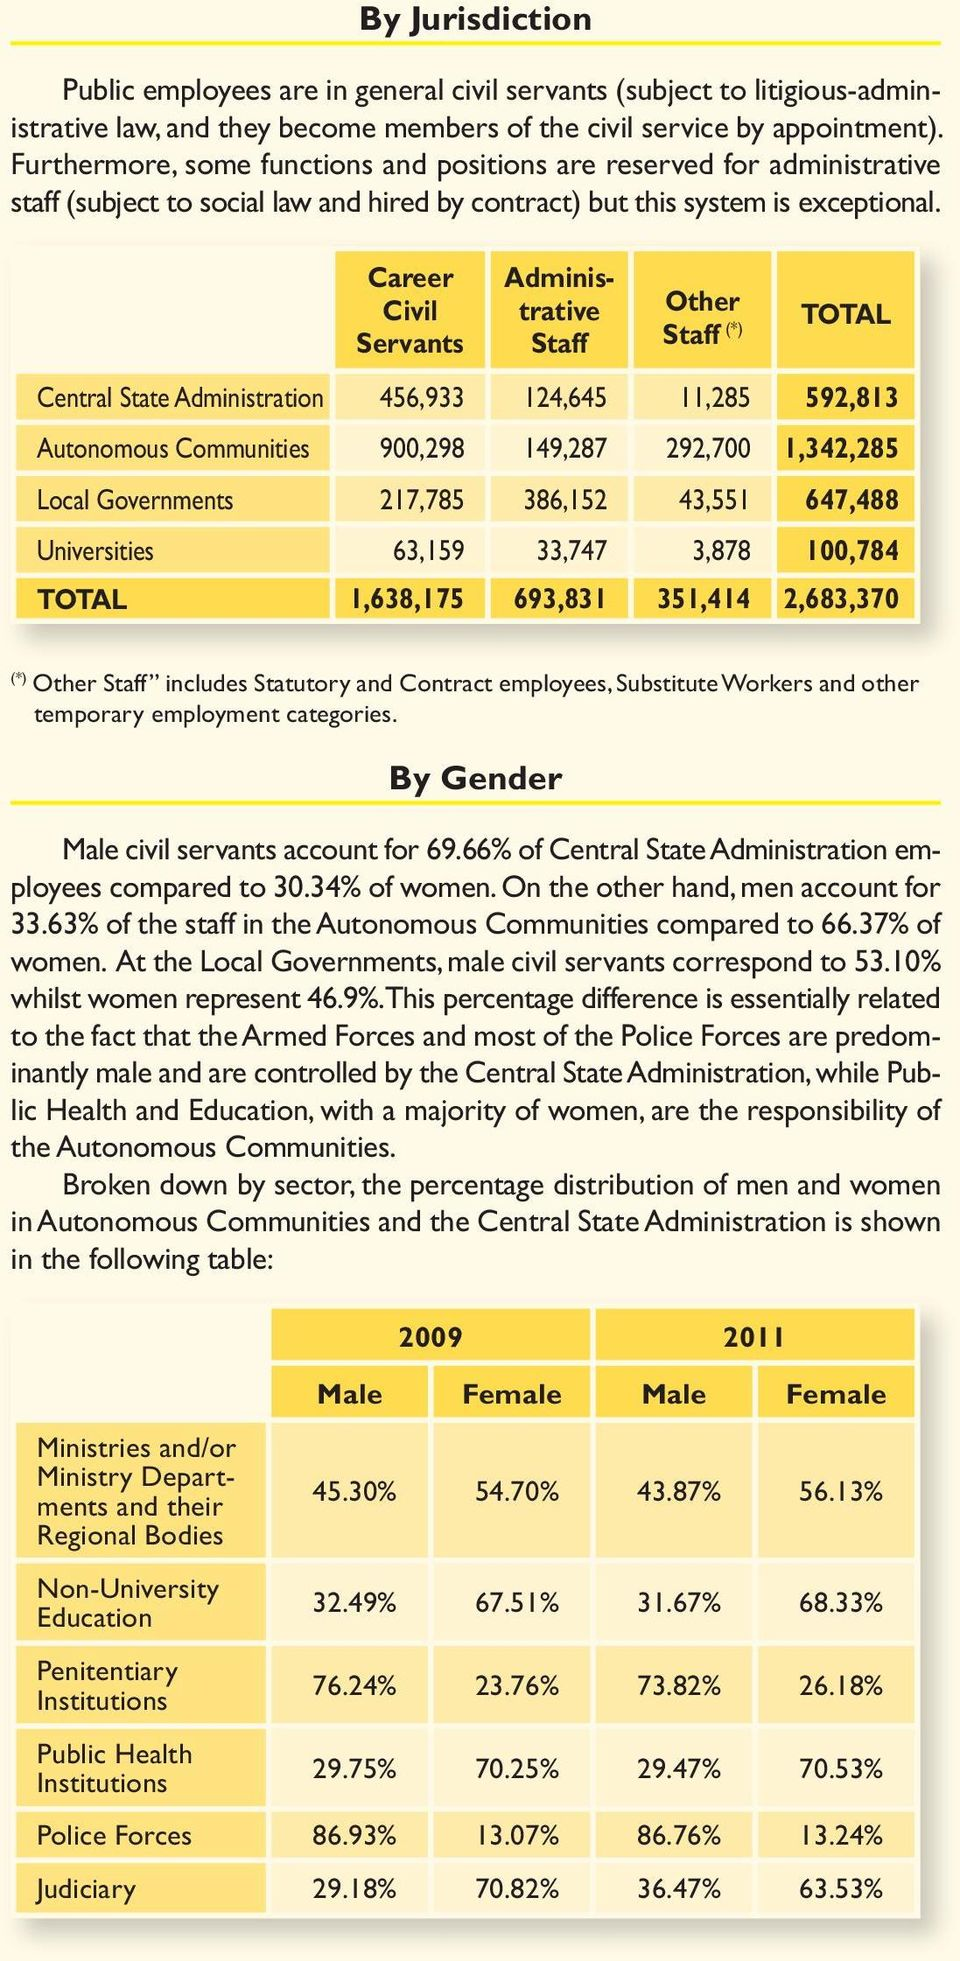 Career Civil Servants Administrative Staff Other Staff (*) TOTAL Central State Administration 456,933 124,645 11,285 592,813 Autonomous Communities 900,298 149,287 292,700 1,342,285 Local Governments